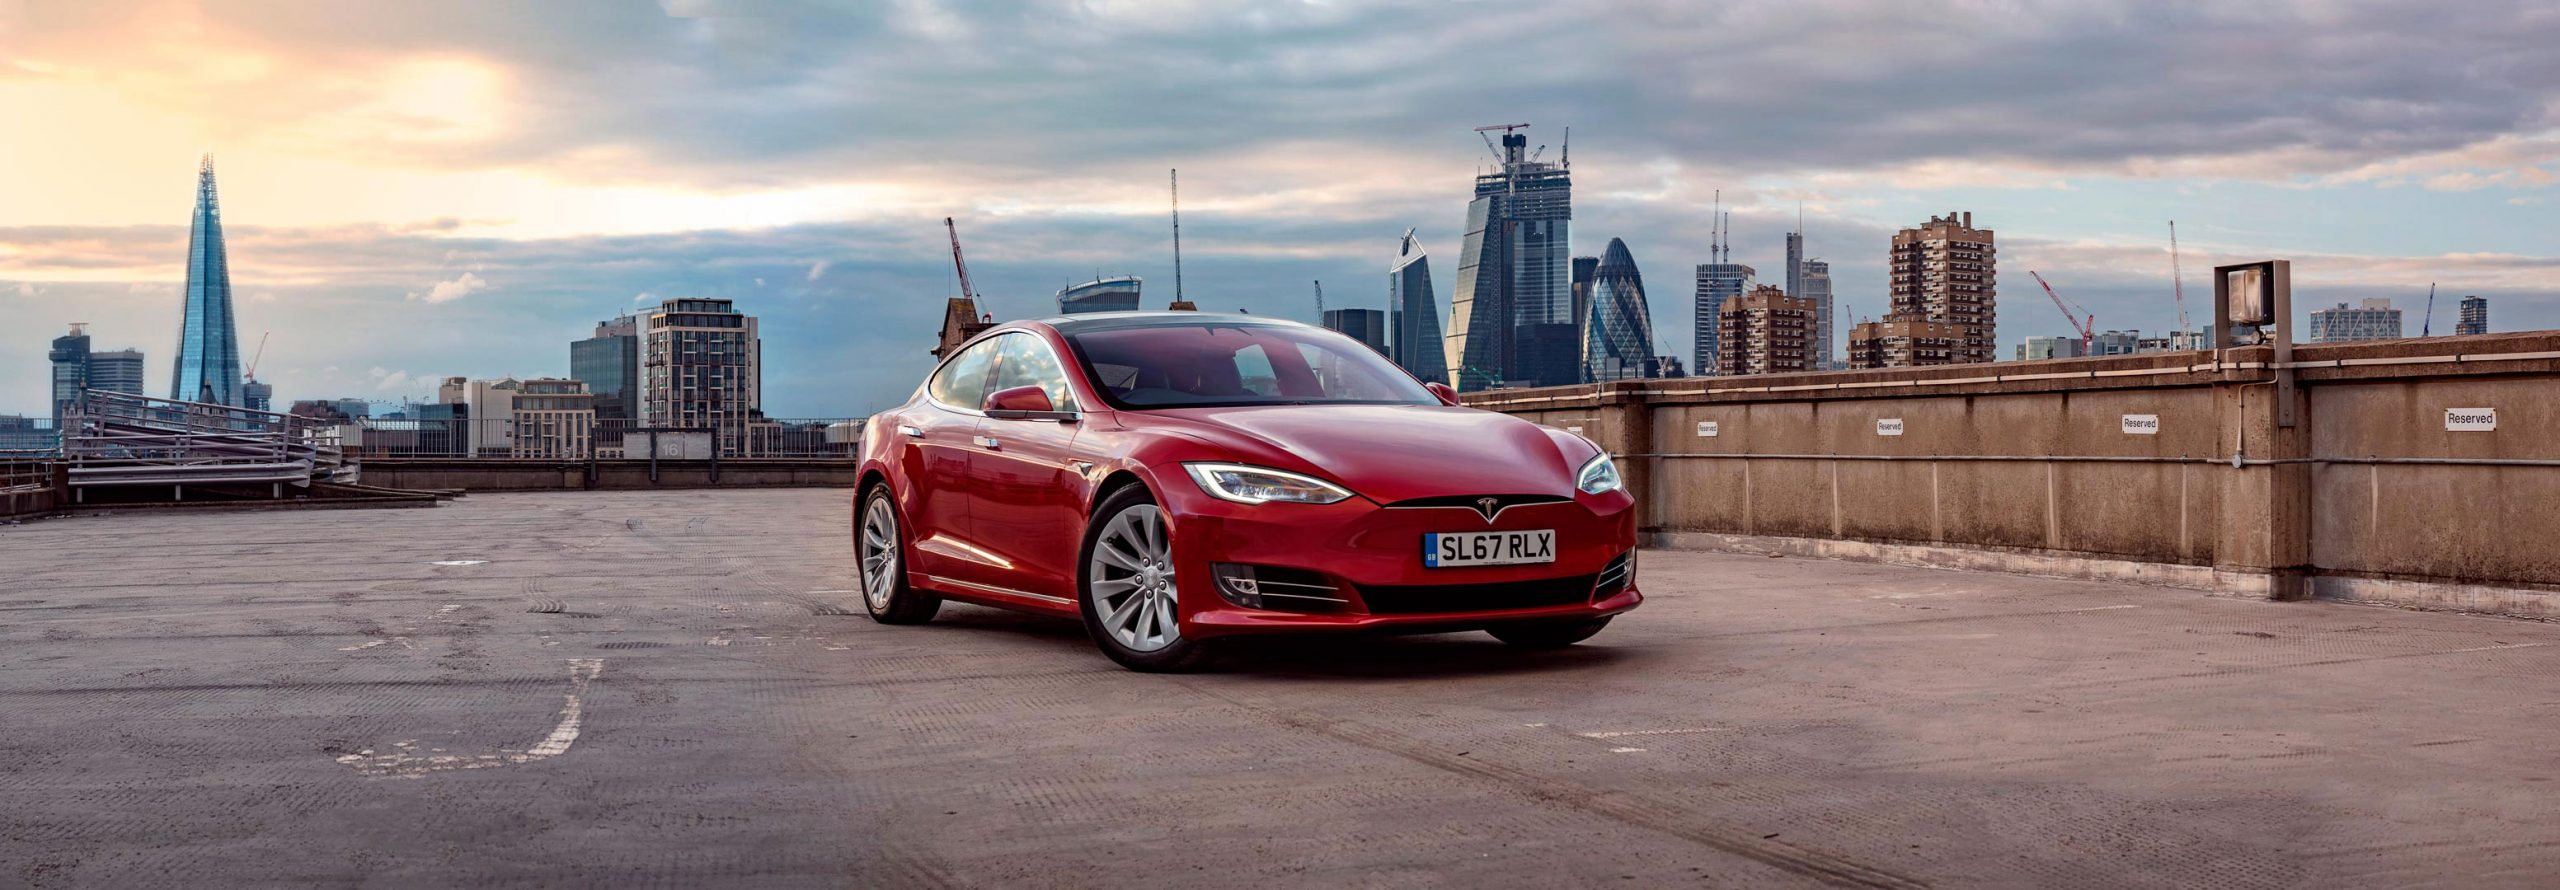 Tesla Model S - Photography by Dean Wright Automotive